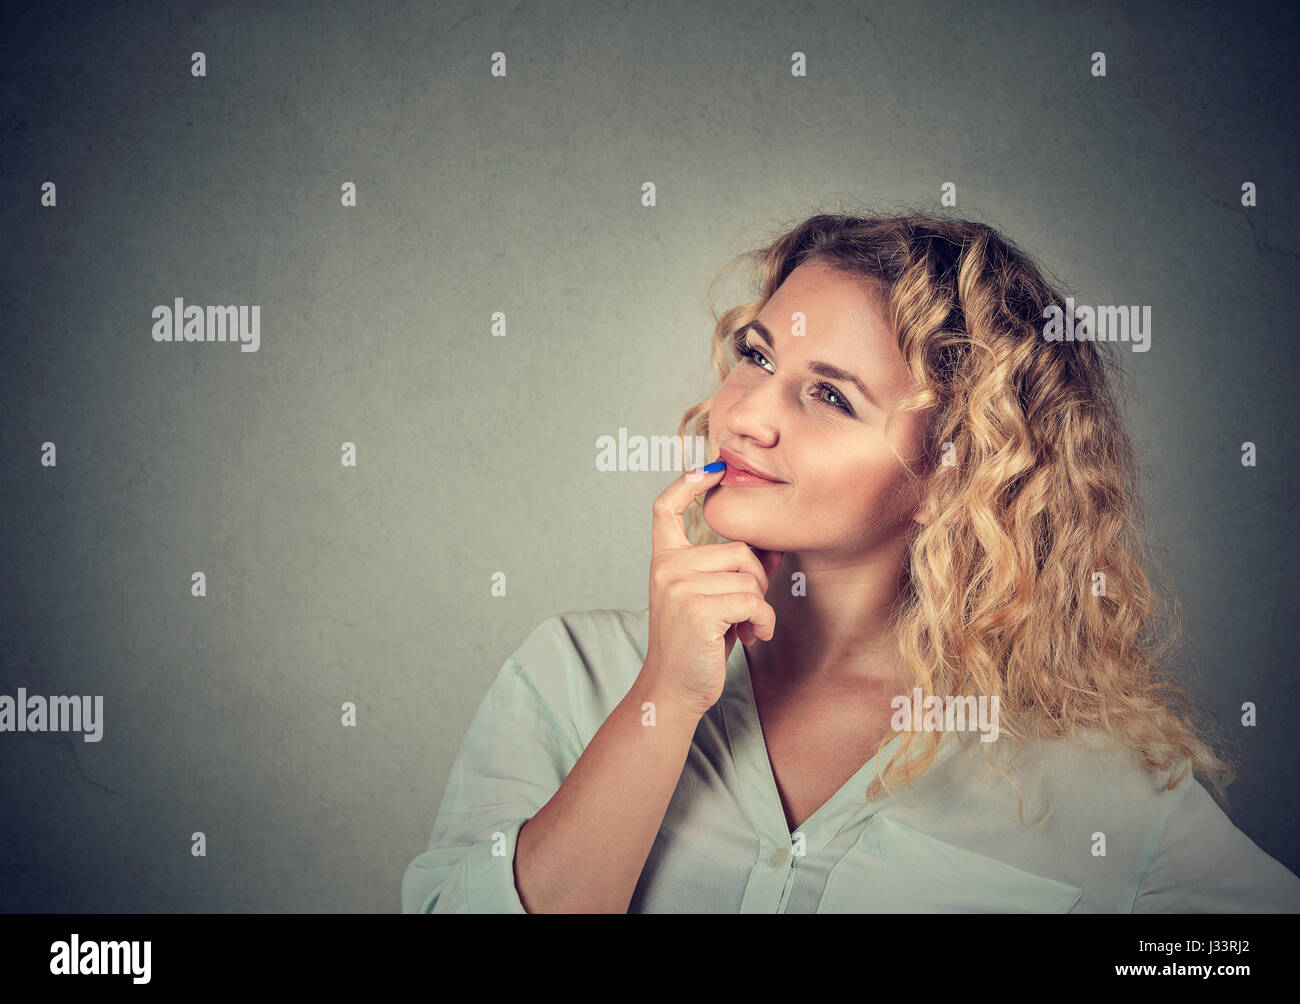 Portrait happy beautiful woman thinking looking up isolated on gray wall background with copy space. Human face Stock Photo